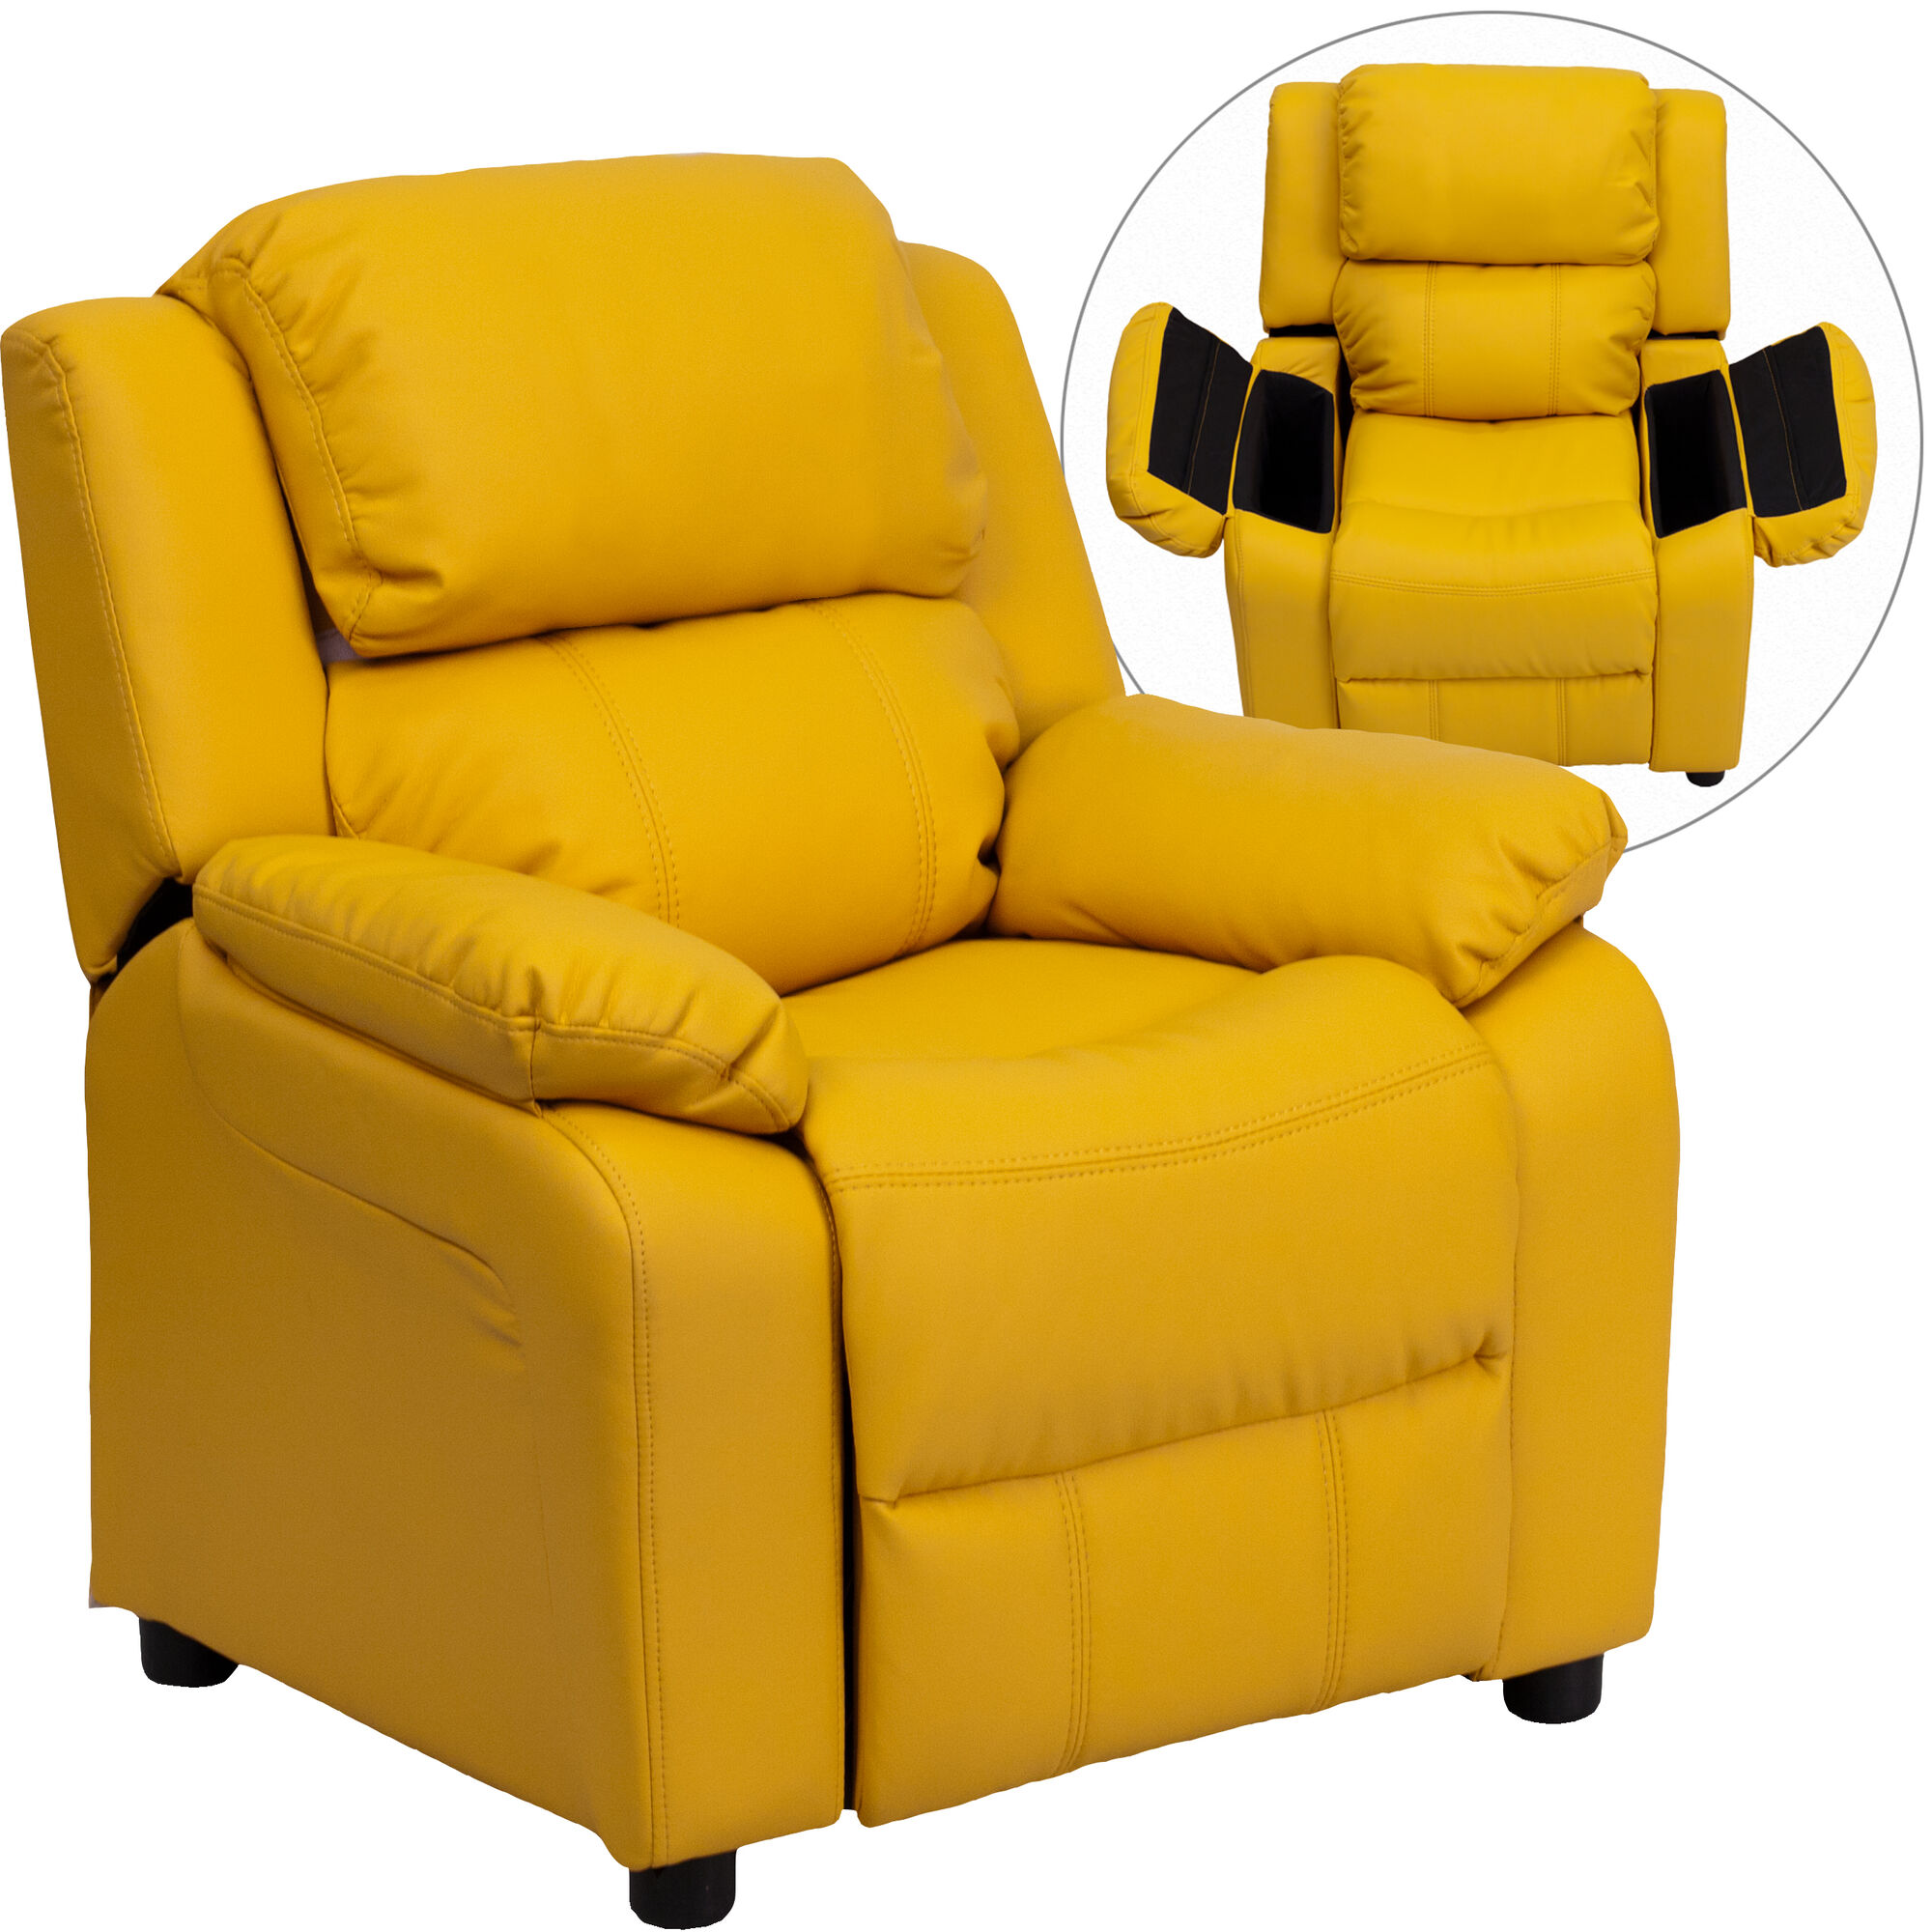 Our Deluxe Padded Contemporary Yellow Vinyl Kids Recliner